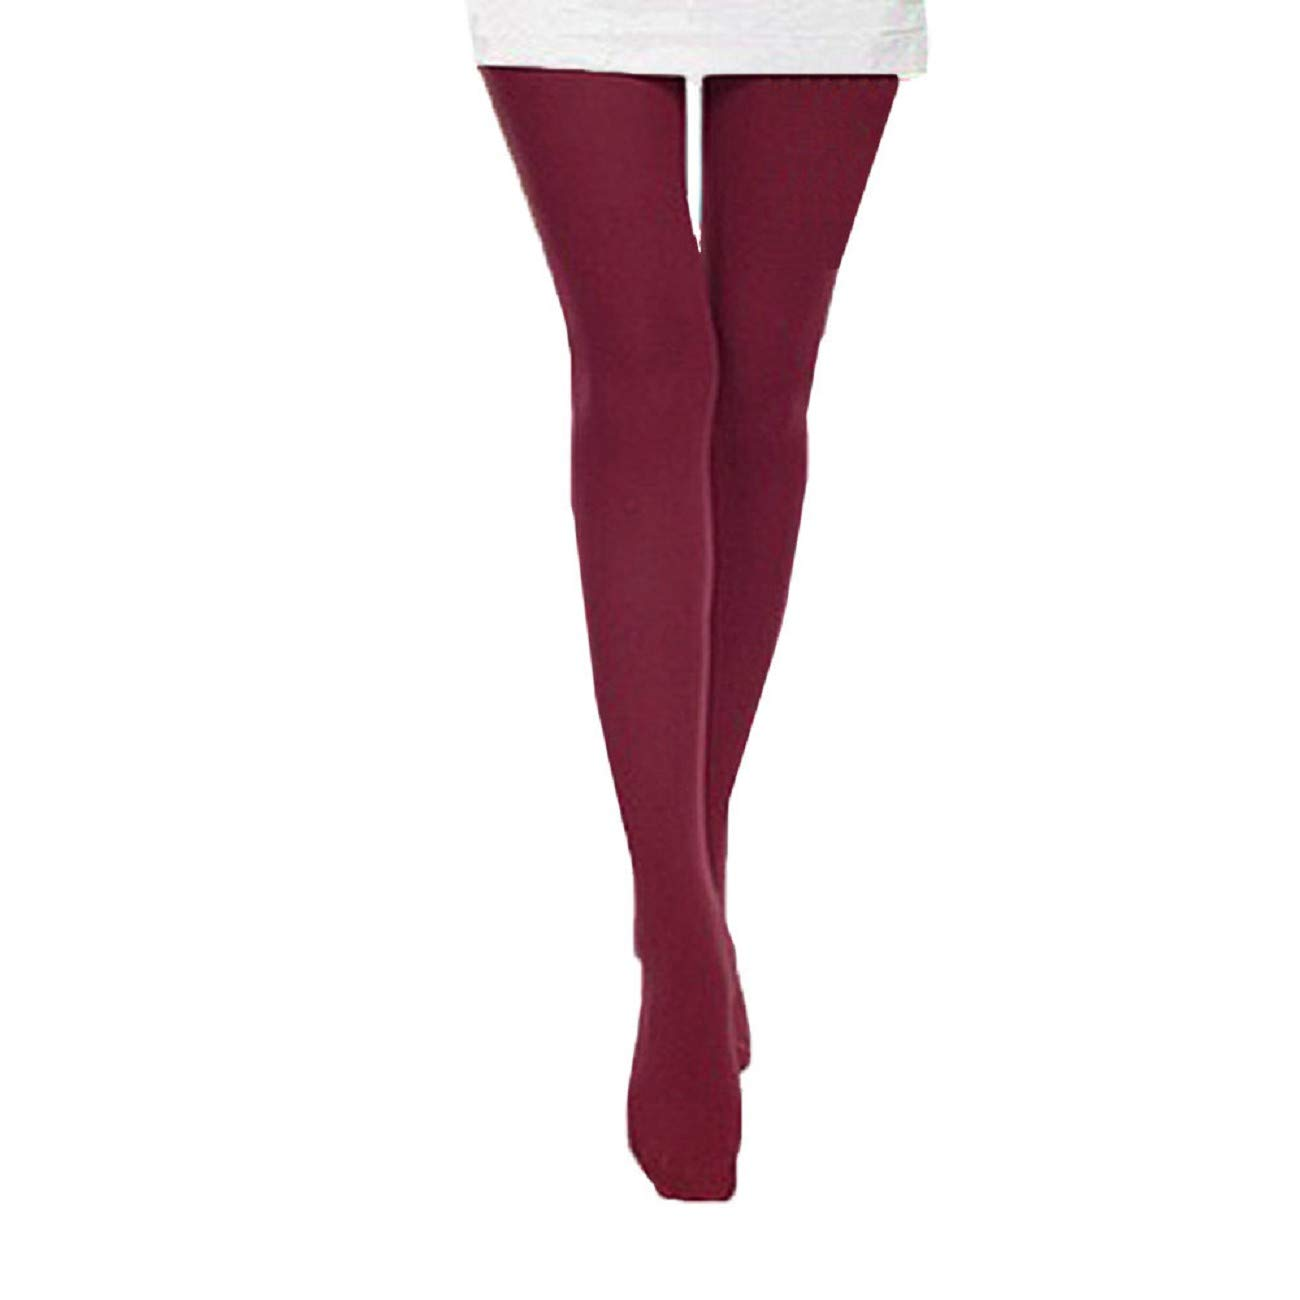 JKLING Autumn Slik Felling Stocking Opaque Tights Solid Candy Color Stretchy Leggings Tights Office Long Pants